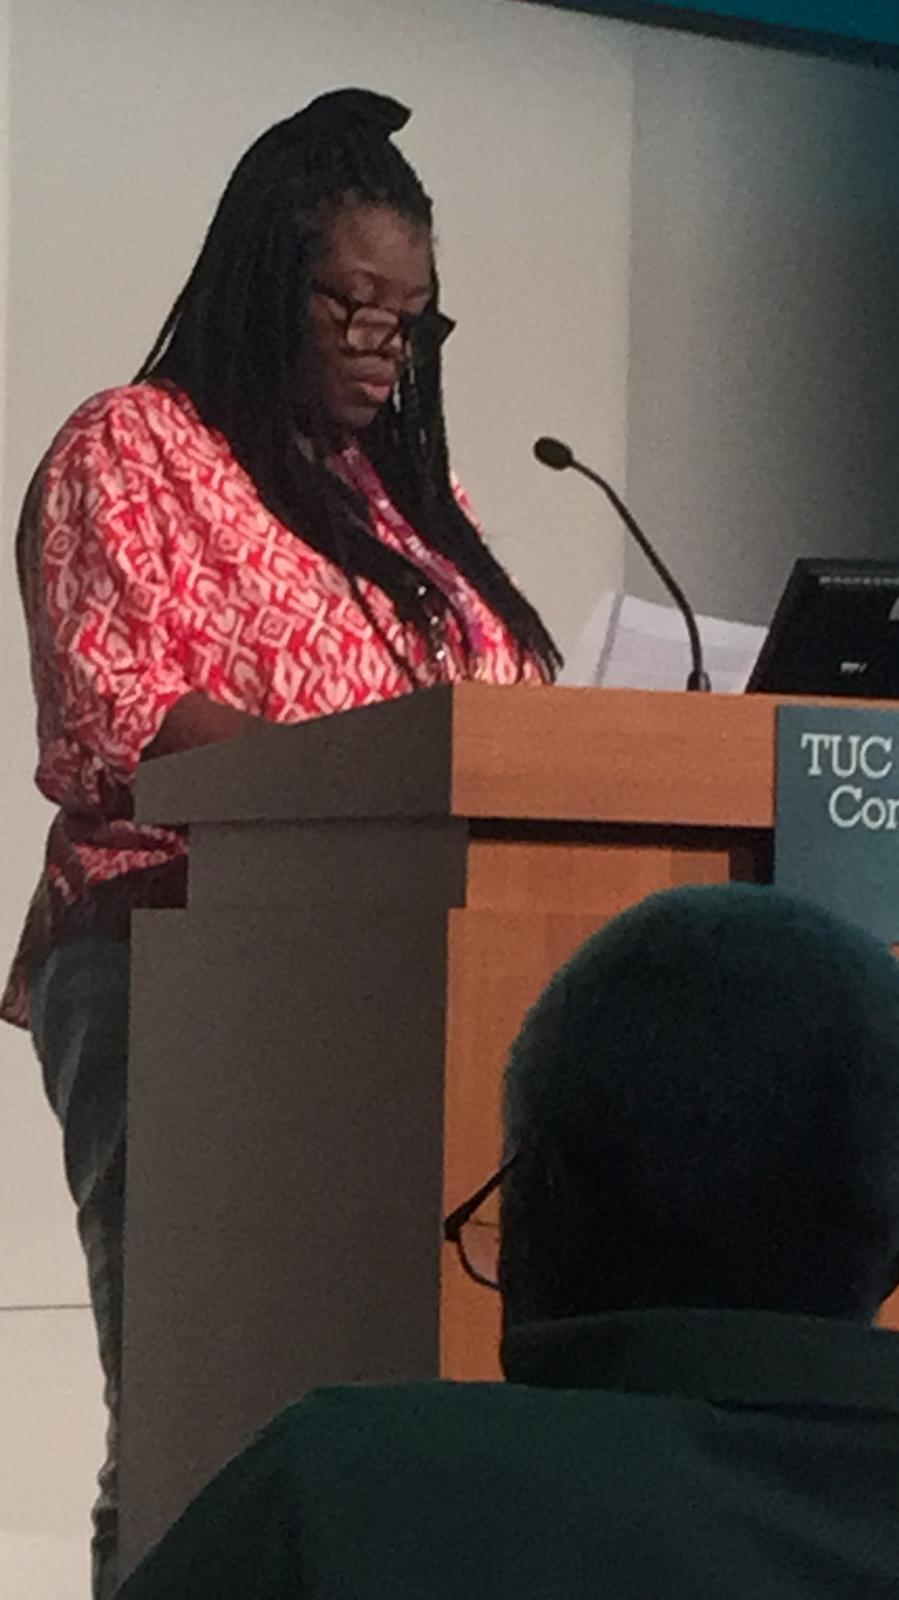 District Secretary Carol talking at the Trade Union Council Conference 2019